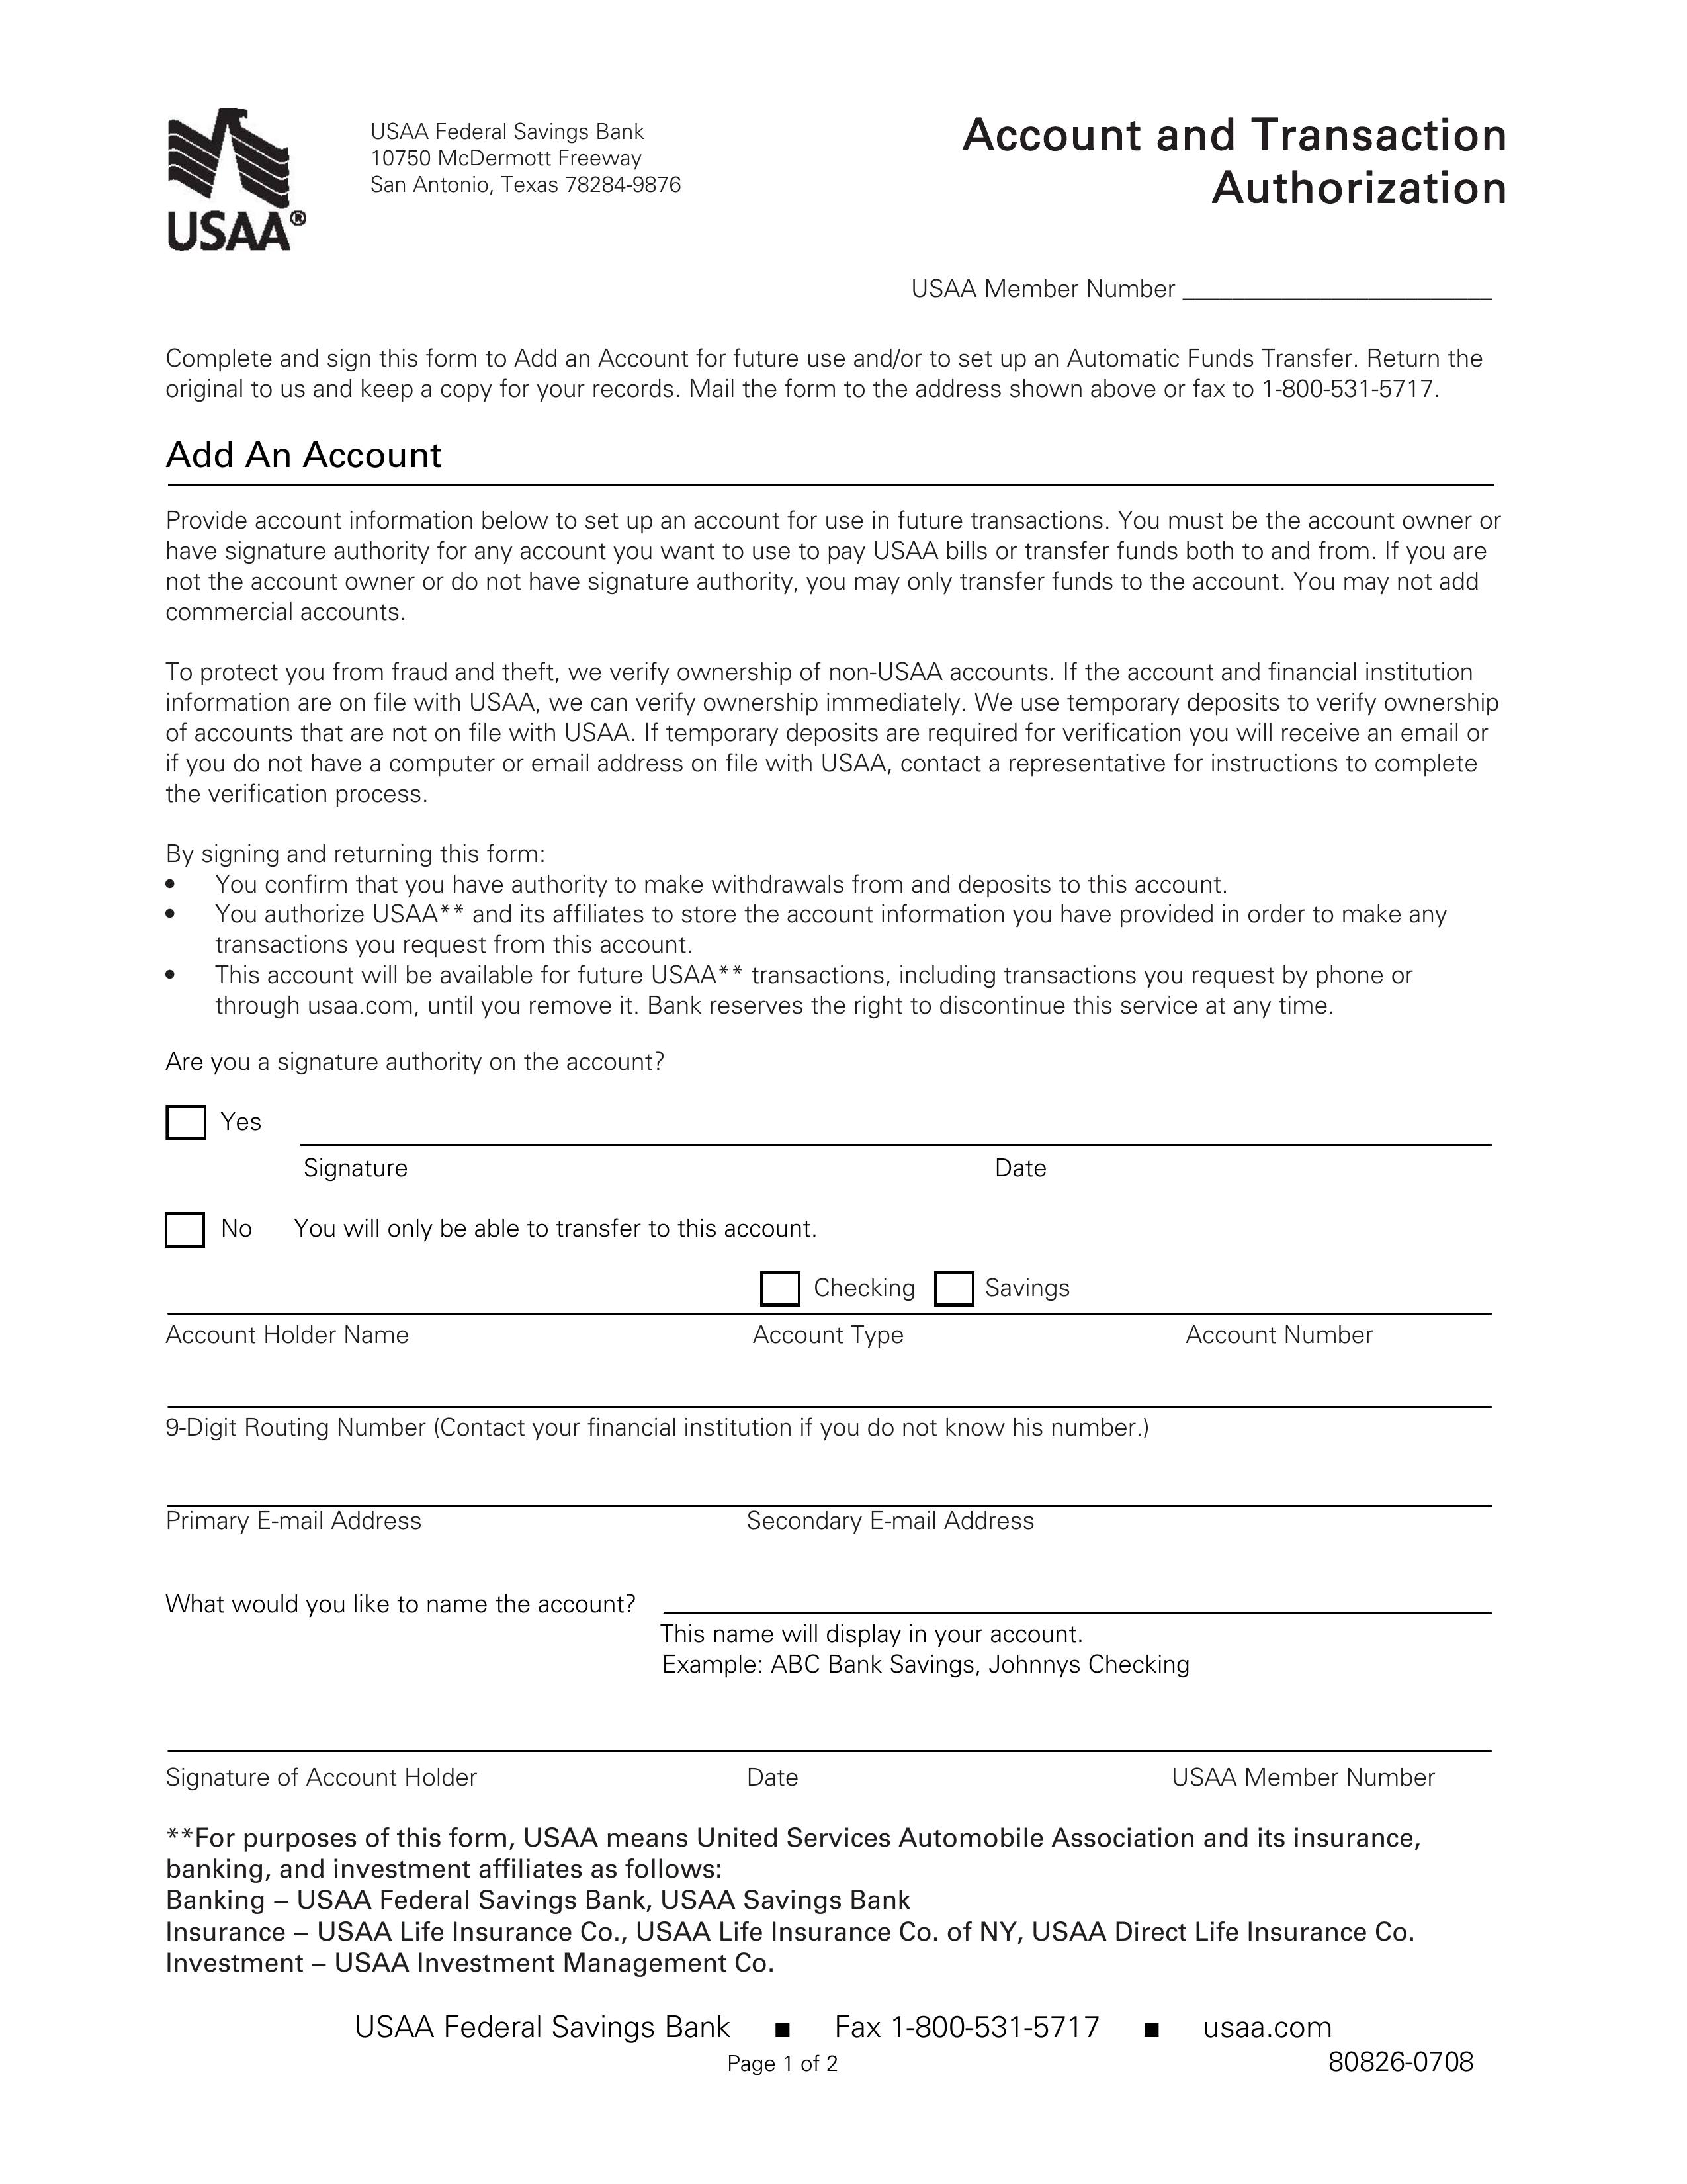 power of attorney form usaa  Free USAA Direct Deposit Authorization Form - PDF | eForms ...